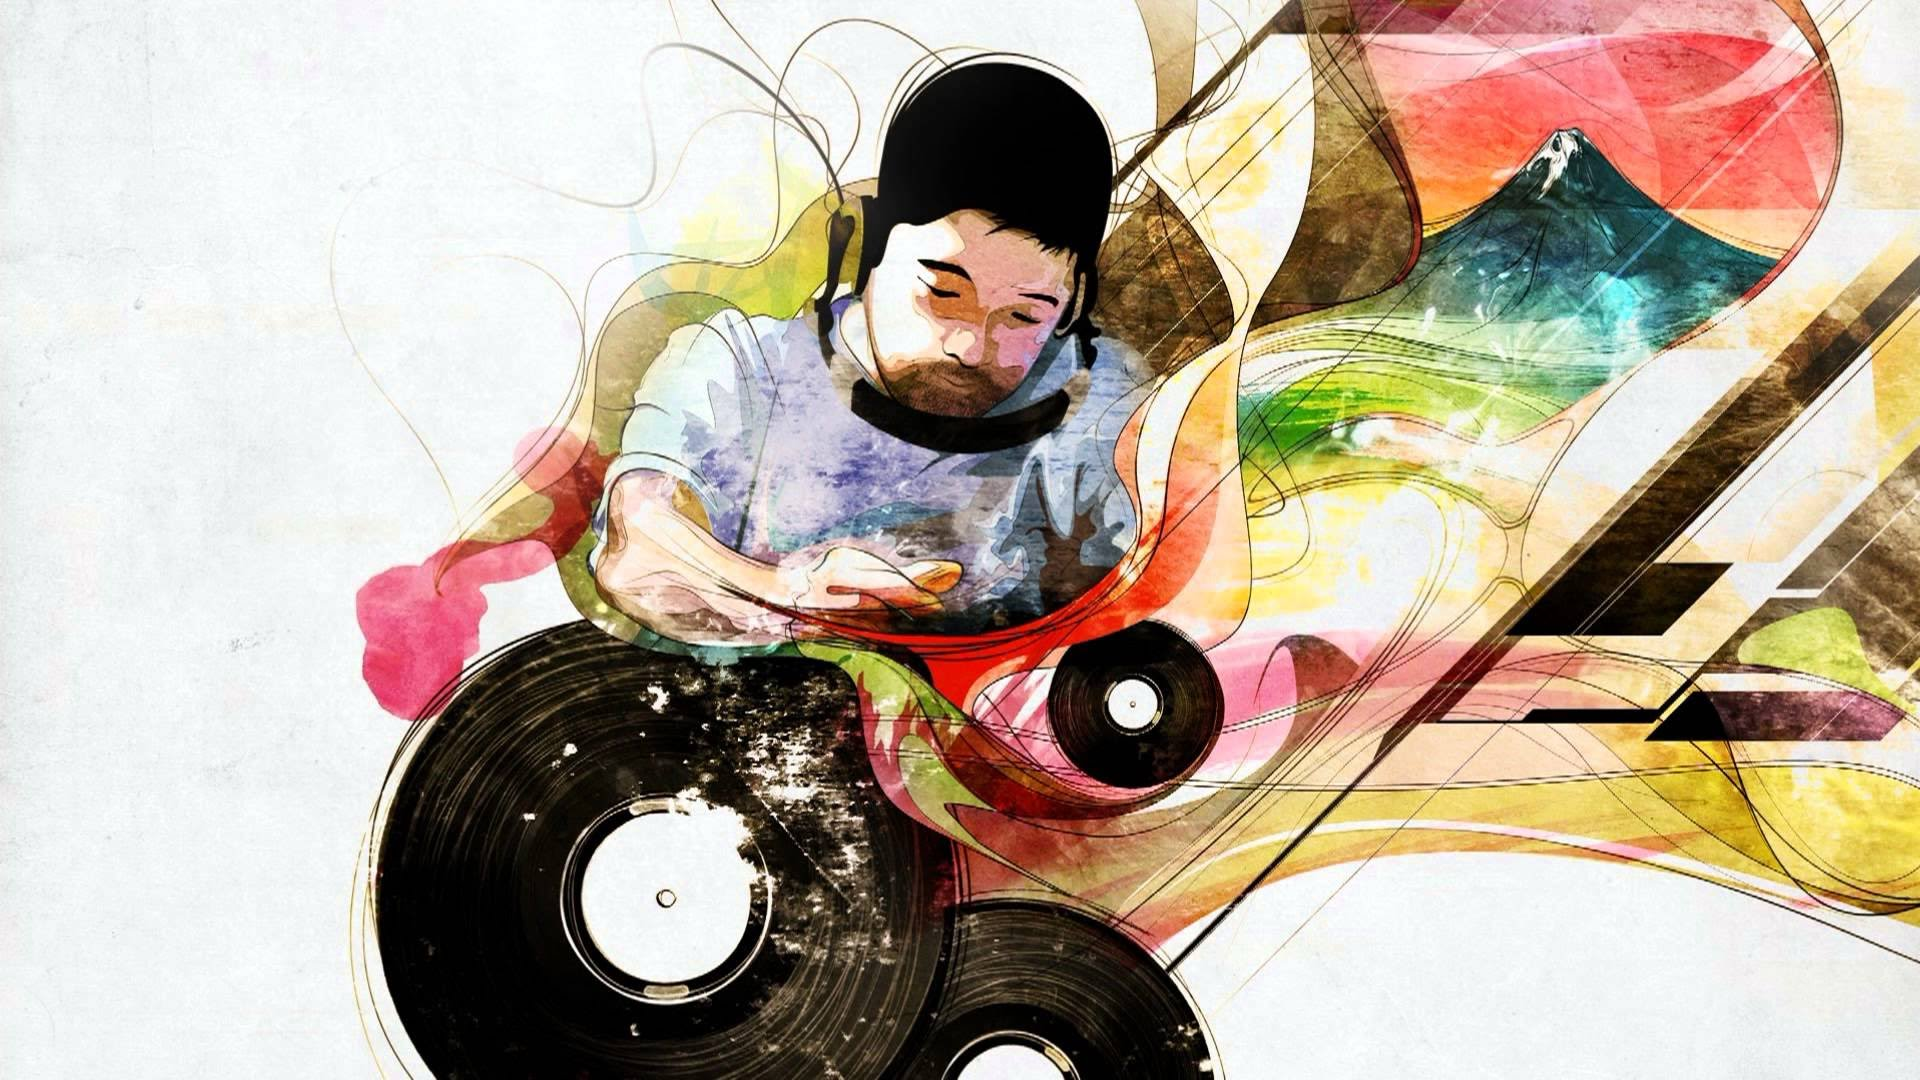 FEATURE: Top 10 Nujabes songs - ranked from worst to best